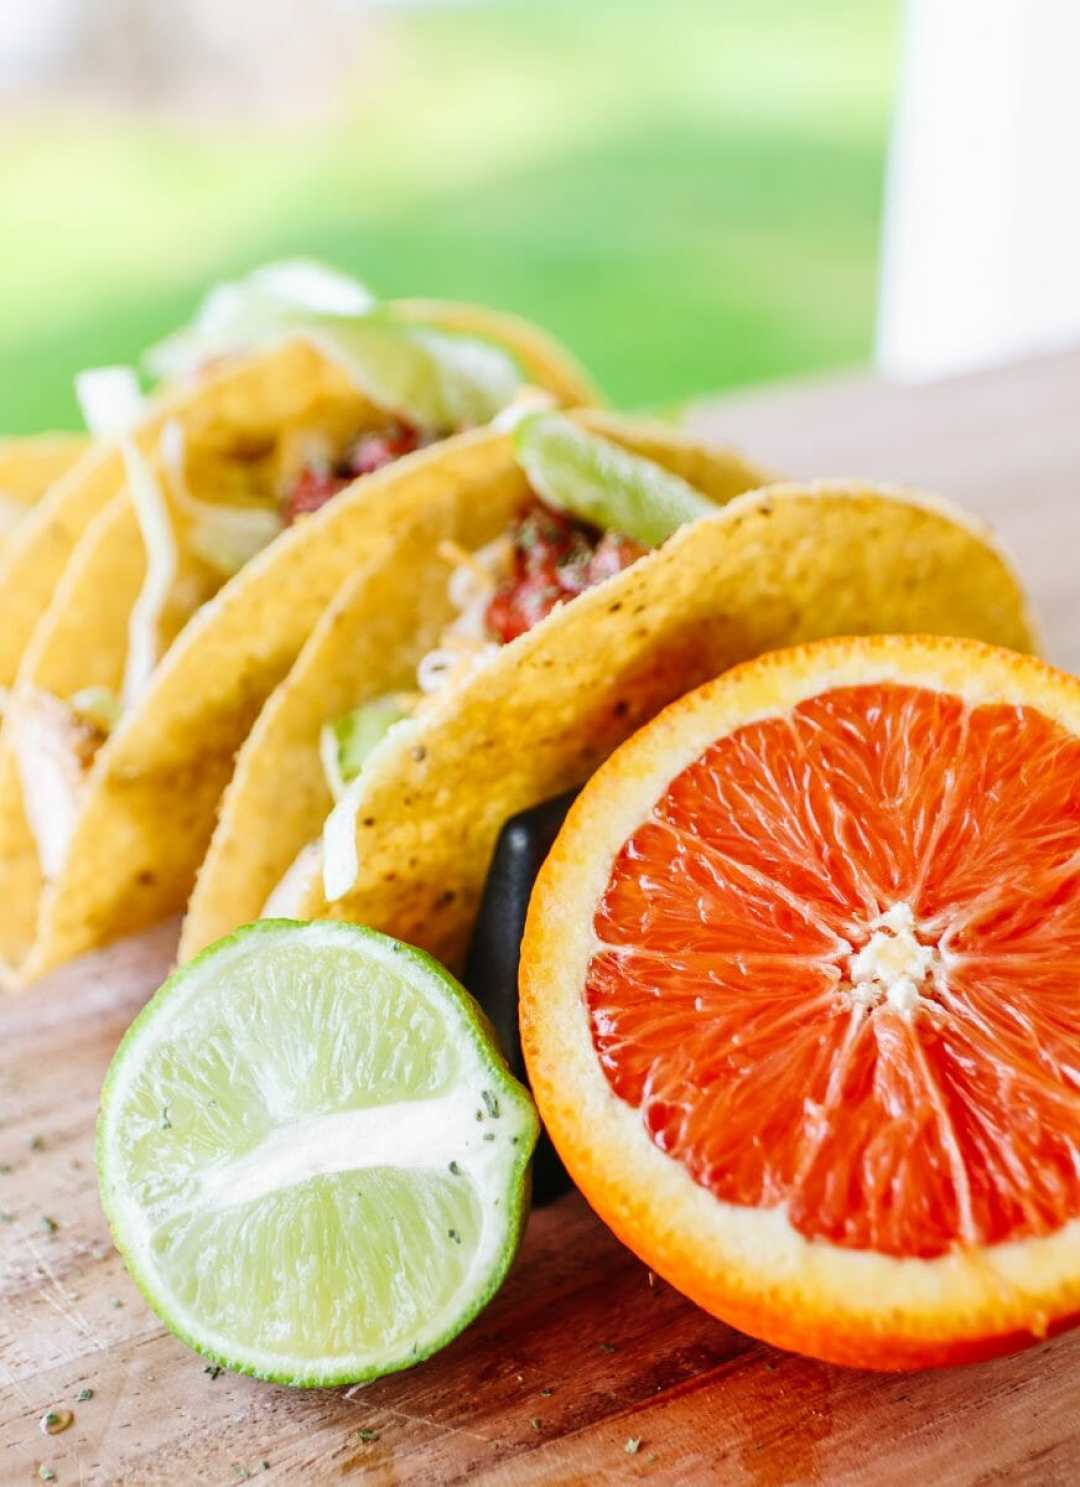 Tacos Made From The Easiest Crockpot Chicken, Made With Sunkist Oranges by JC Phelps of JCP Eats, A Kentucky Based Food, Travel, and Lifestyle Blog